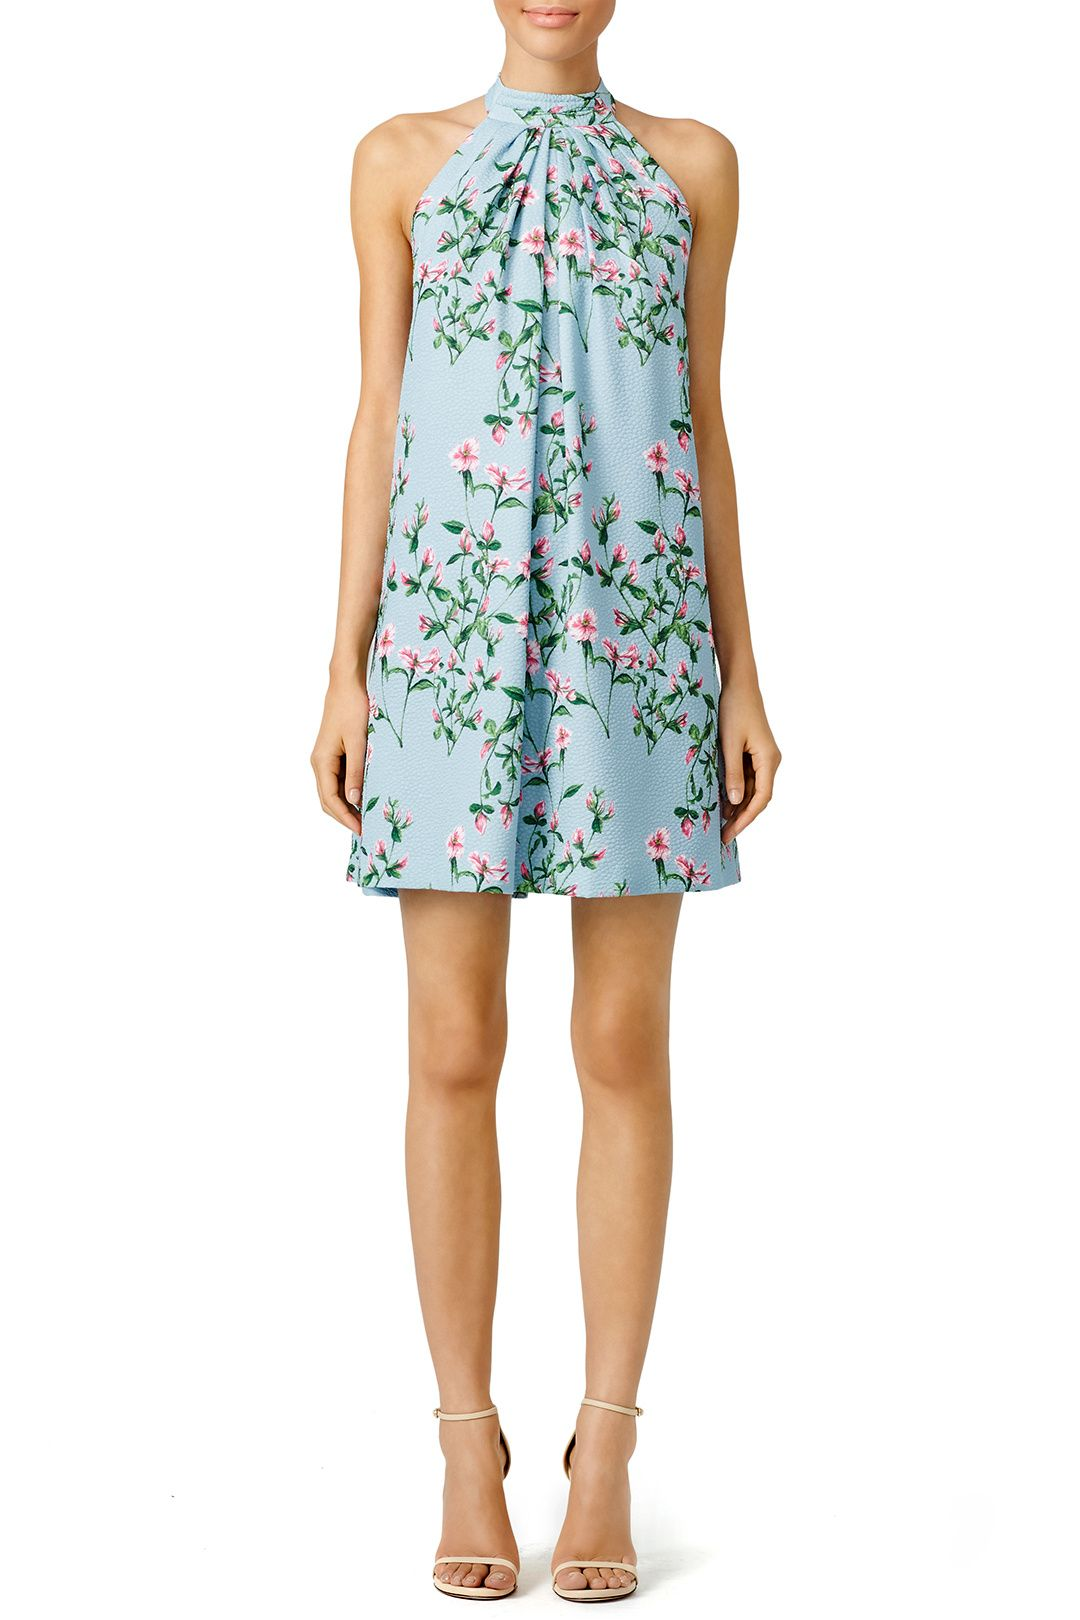 This CYNTHIA STEFFE dress is fresh and floral. Try wearing it to an ...